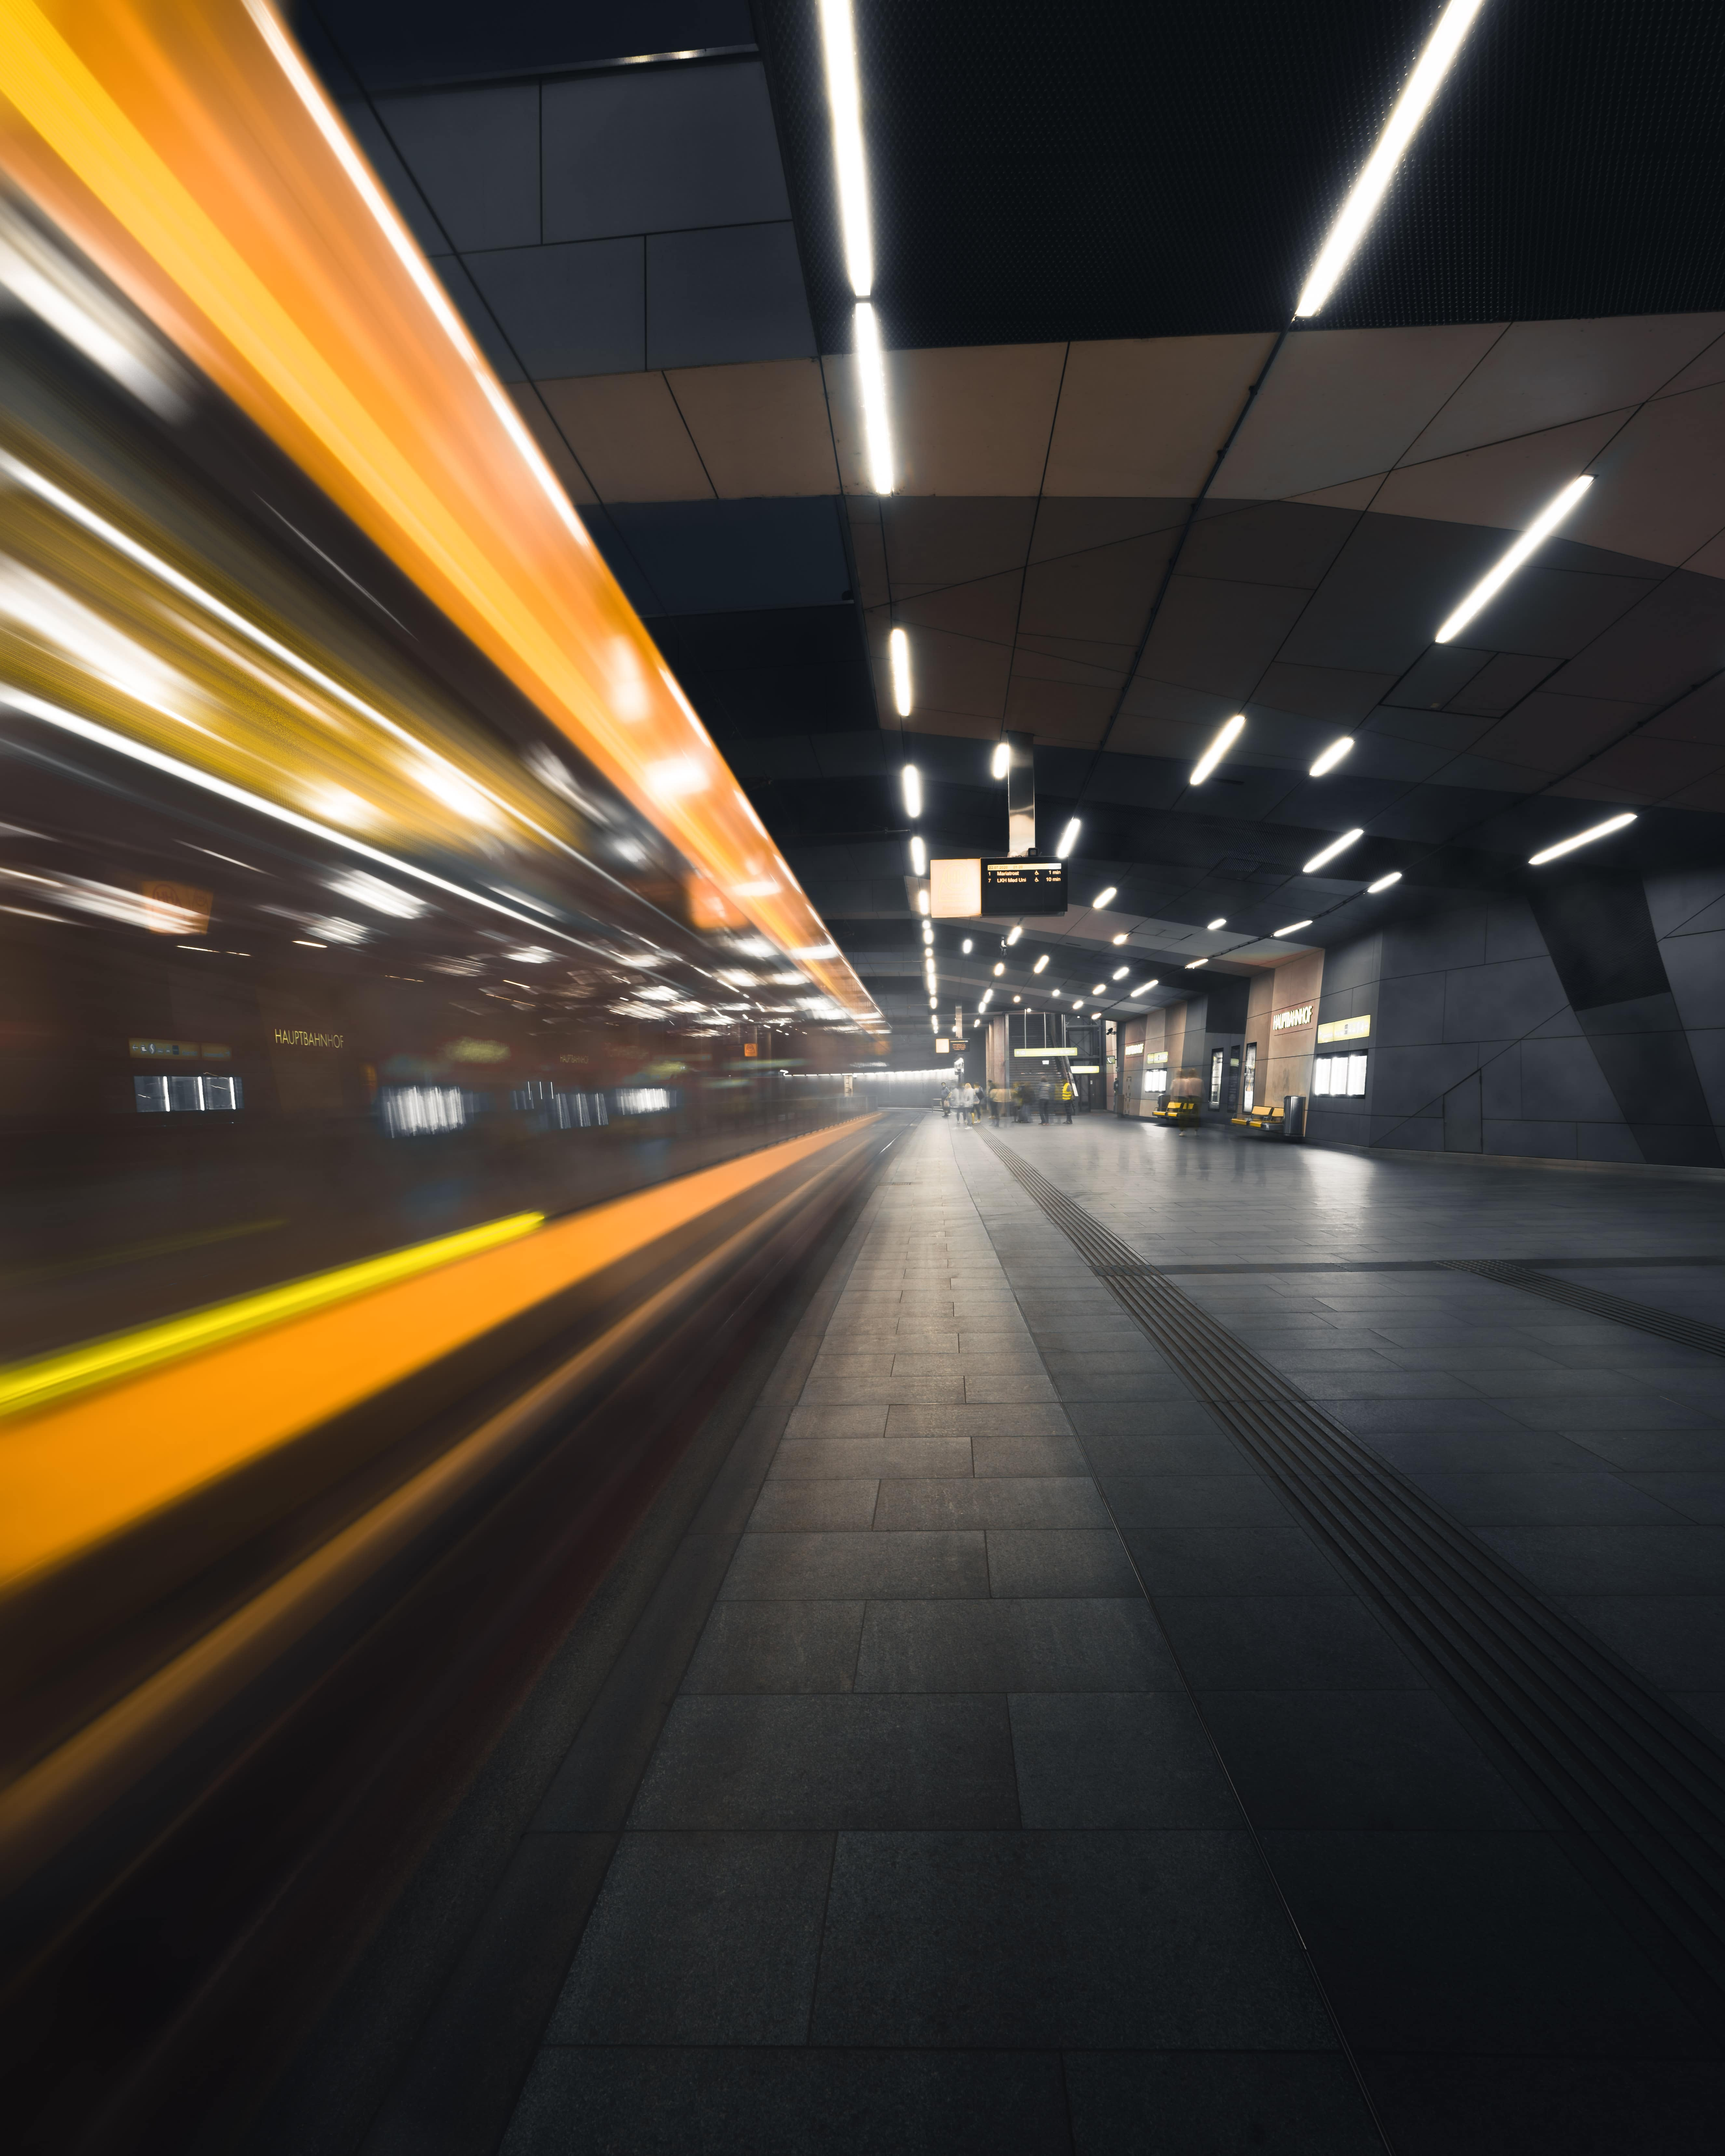 We follow your lead - image of fast train